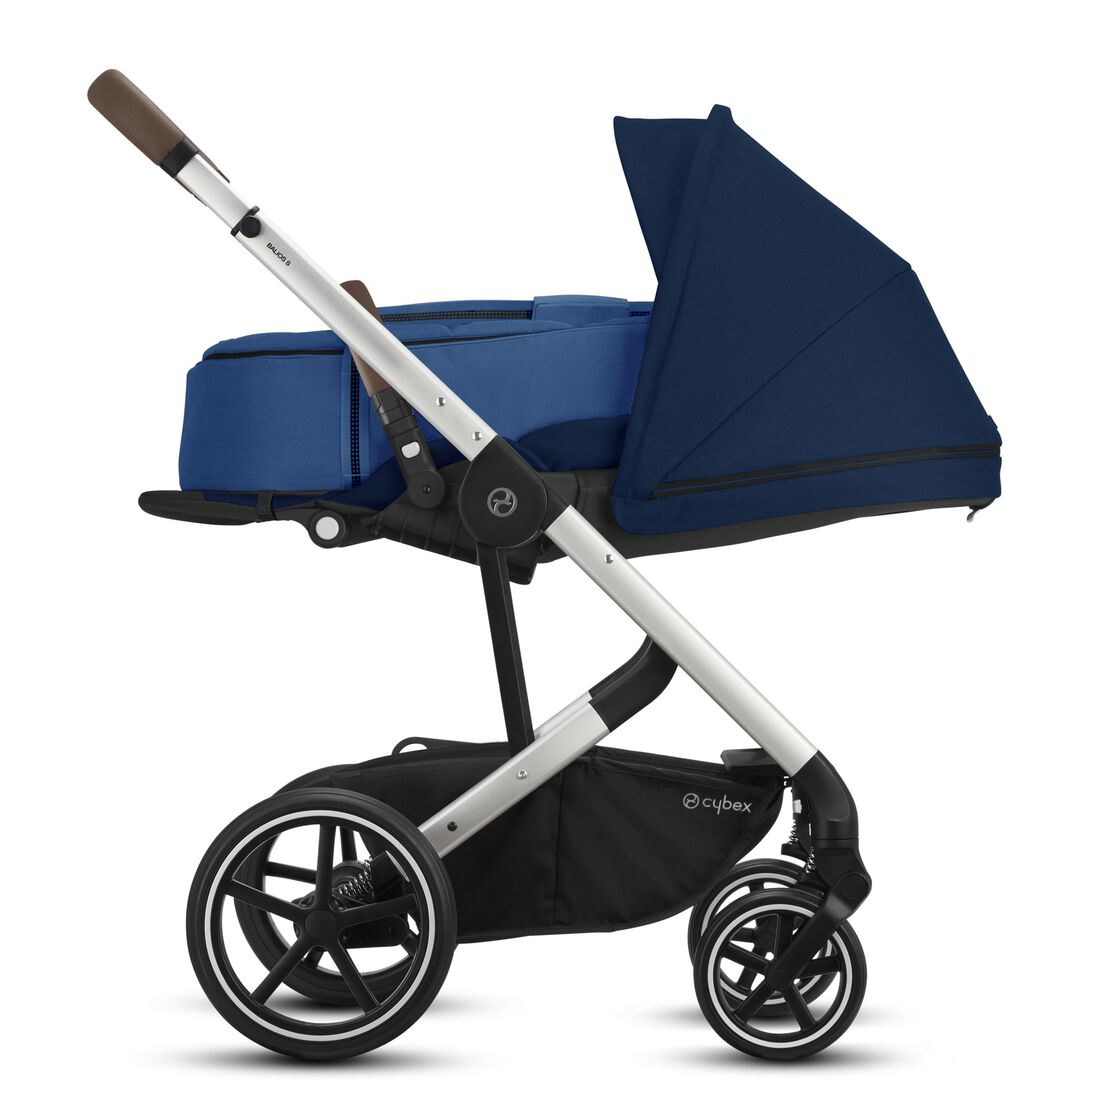 CYBEX Balios S Lux - Navy Blue (Silver Frame) in Navy Blue (Silver Frame) large image number 4